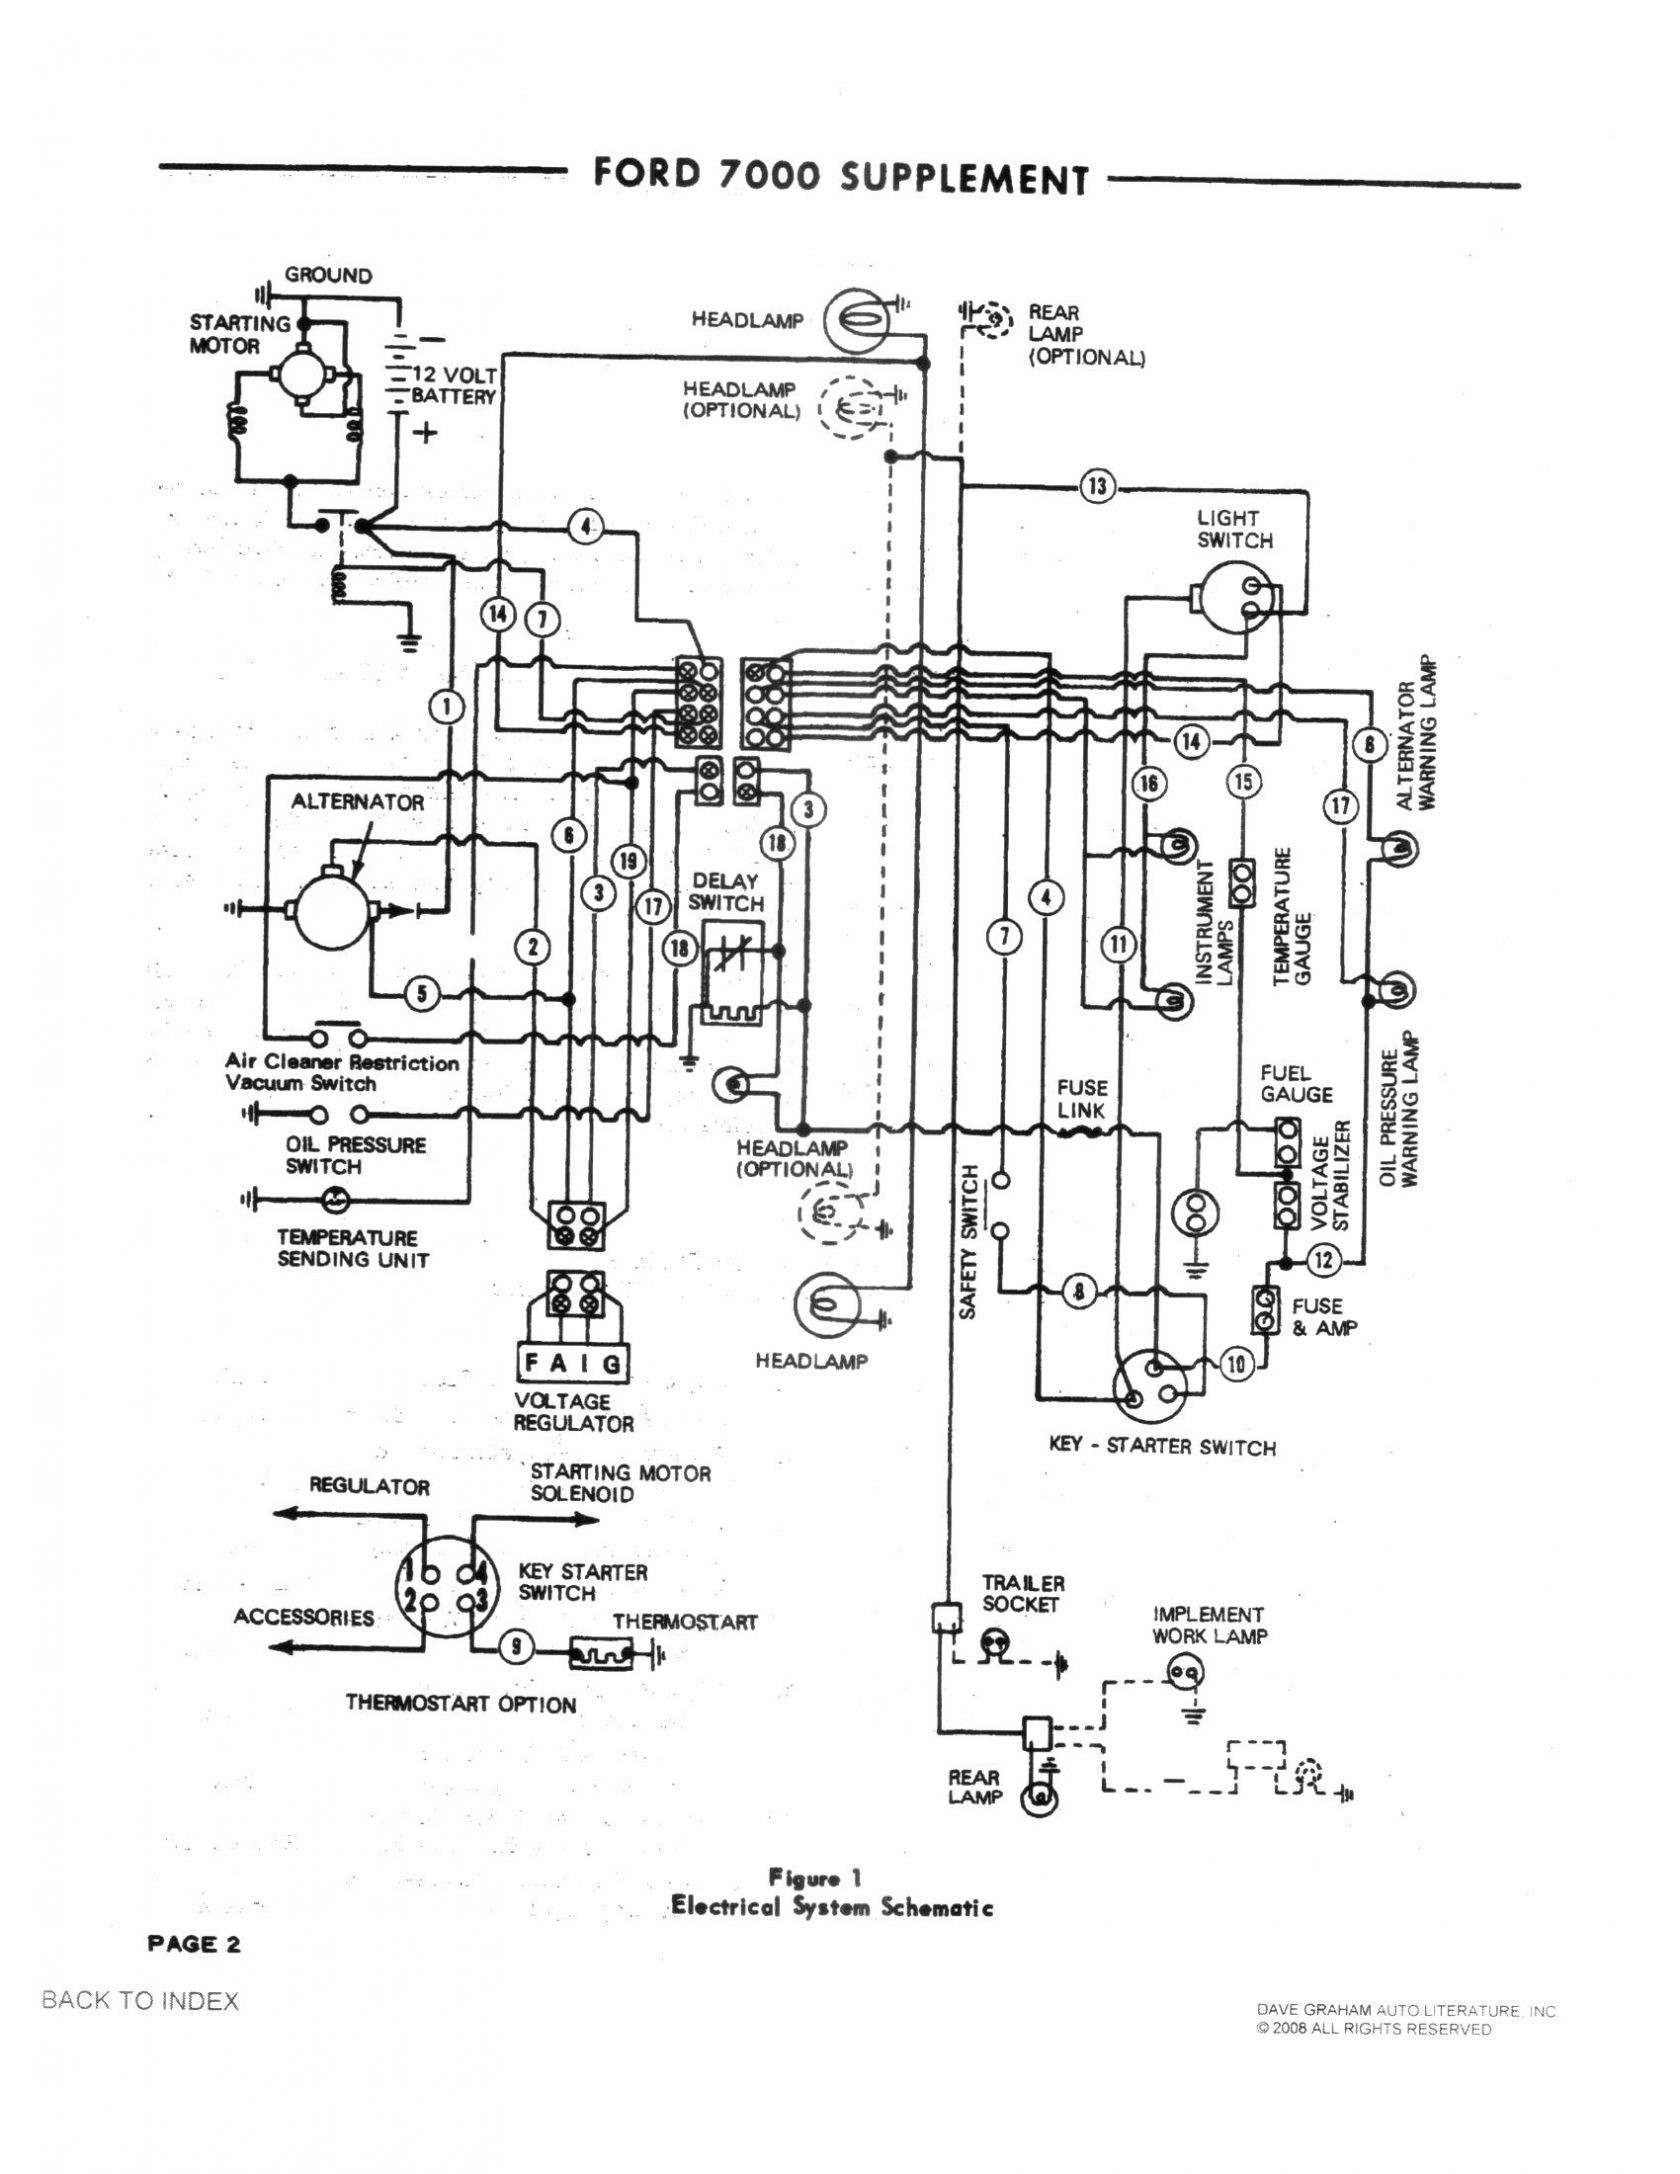 [DIAGRAM_5UK]  7CACD3 Denso Alternator Wiring Diagram 1052814 | Wiring Resources | Denso Alternator Wiring Diagram 1996 |  | Wiring Resources